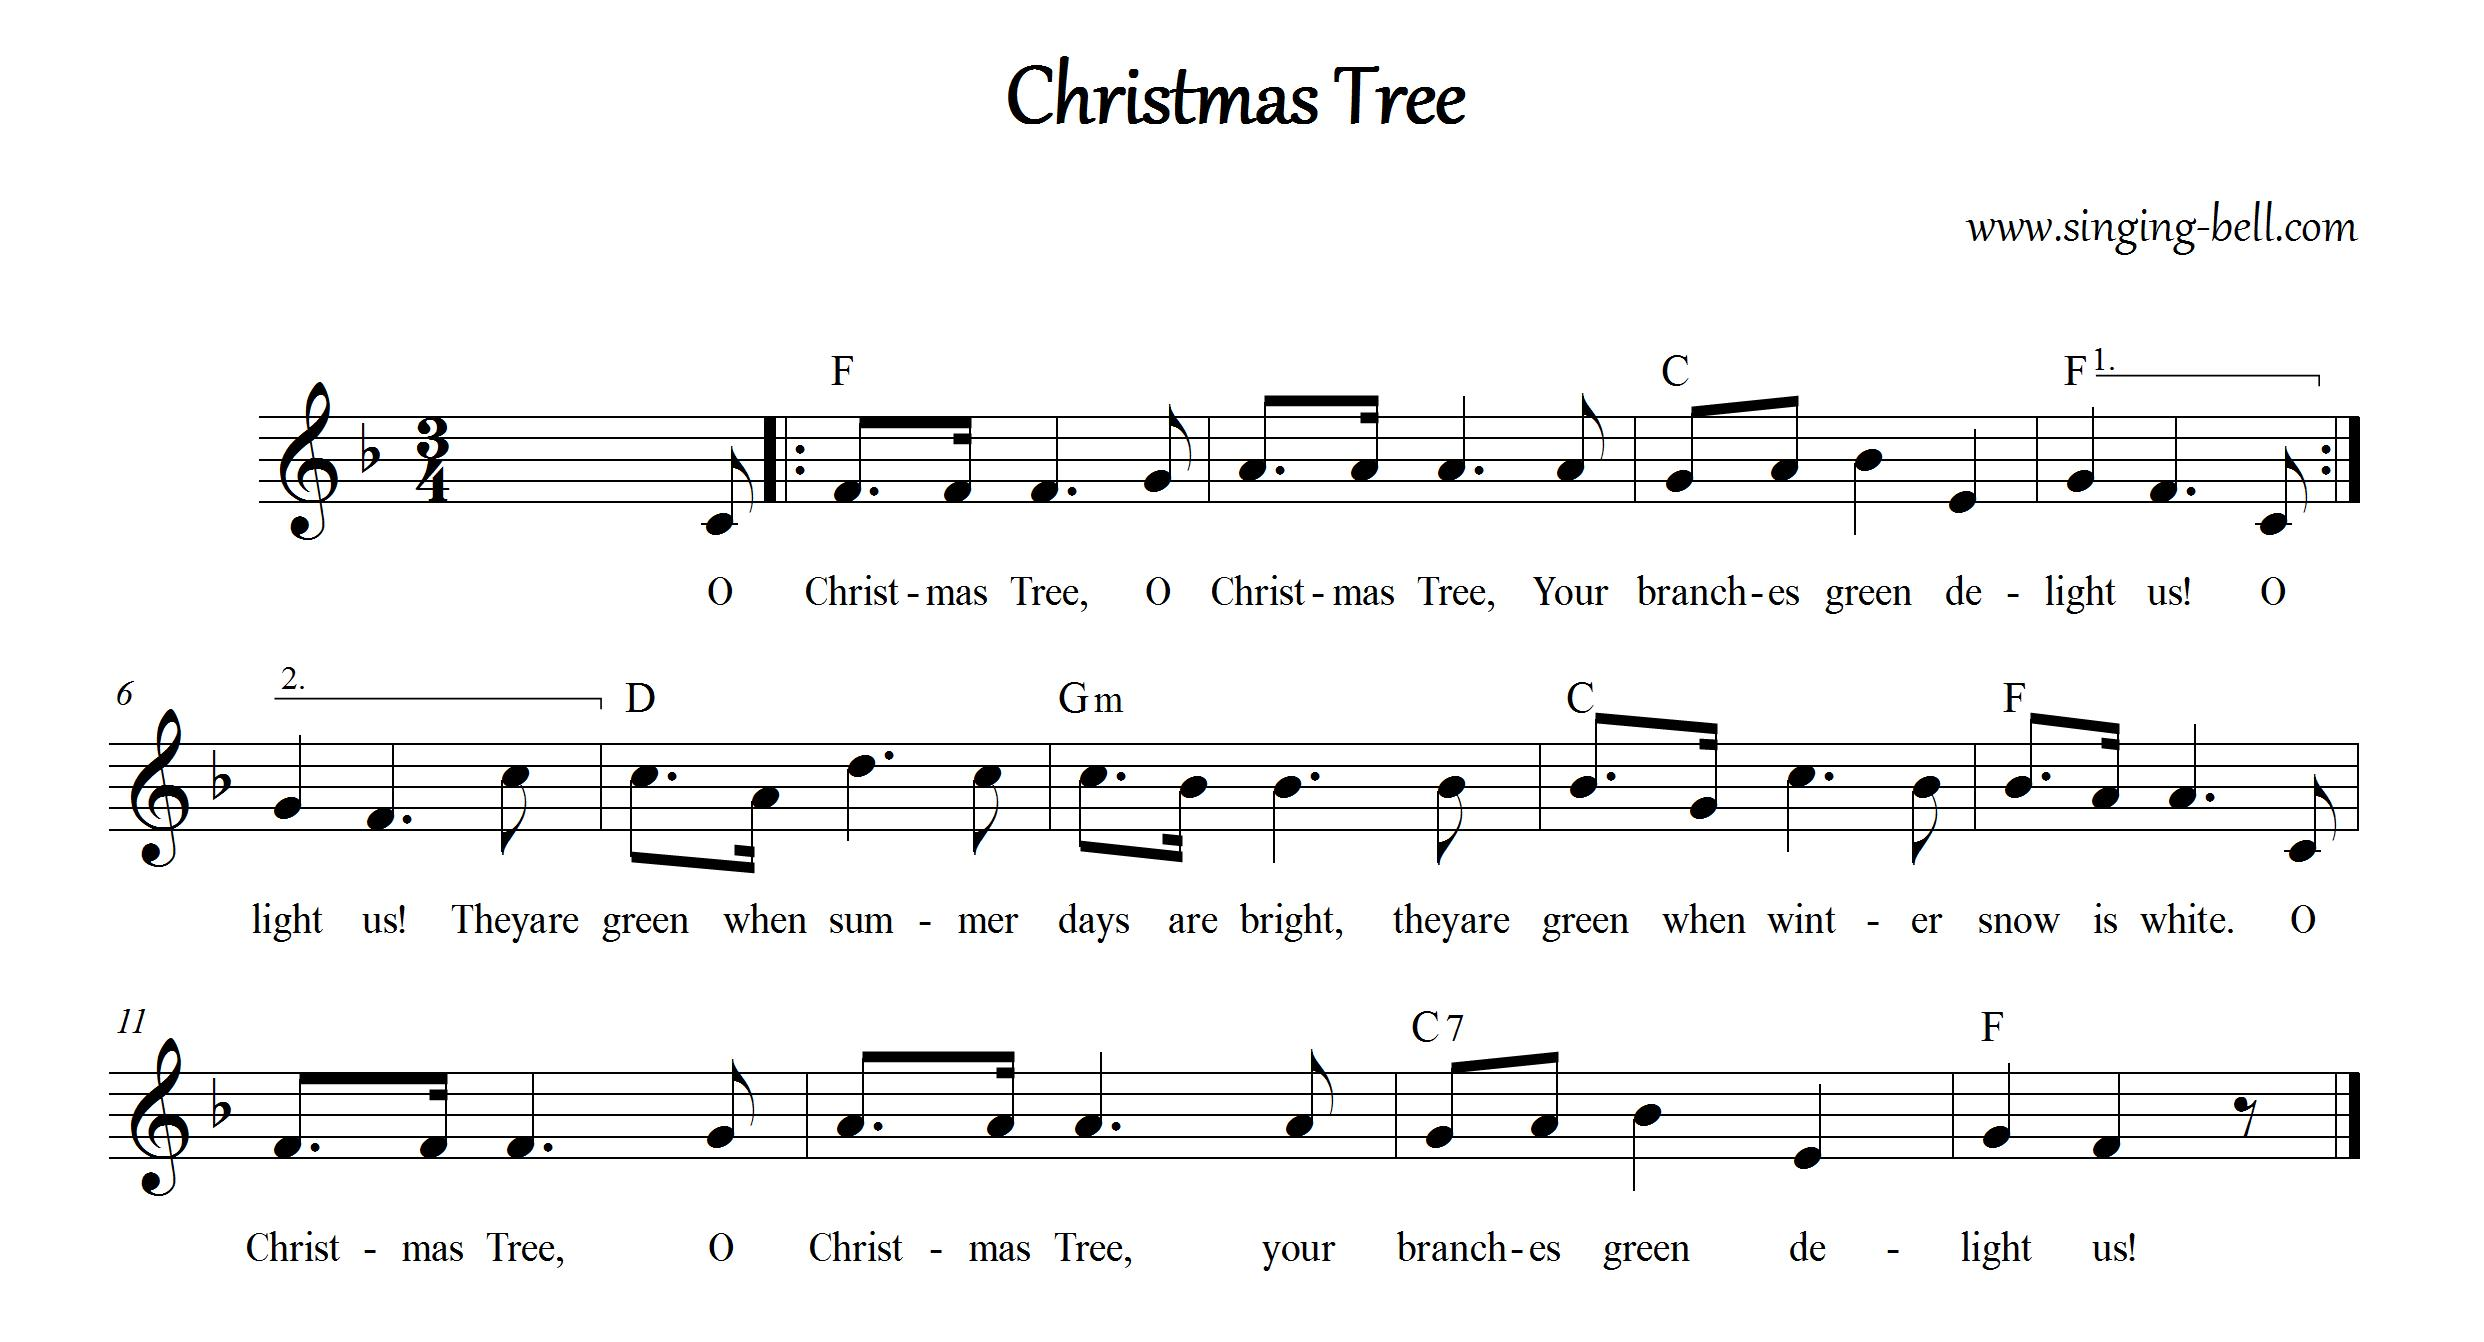 christmas-tree_f_singing-bell